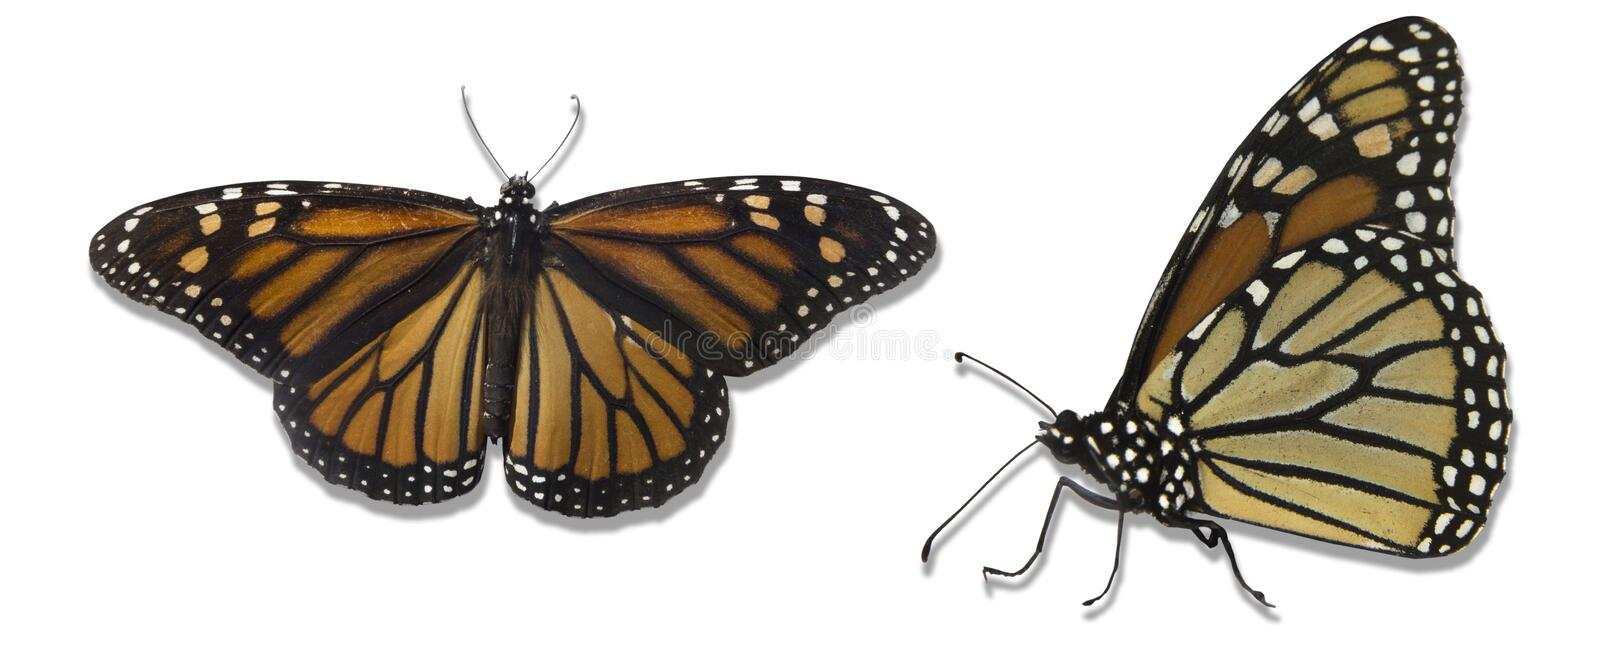 Monarch butterflies isolated over white background royalty free stock image